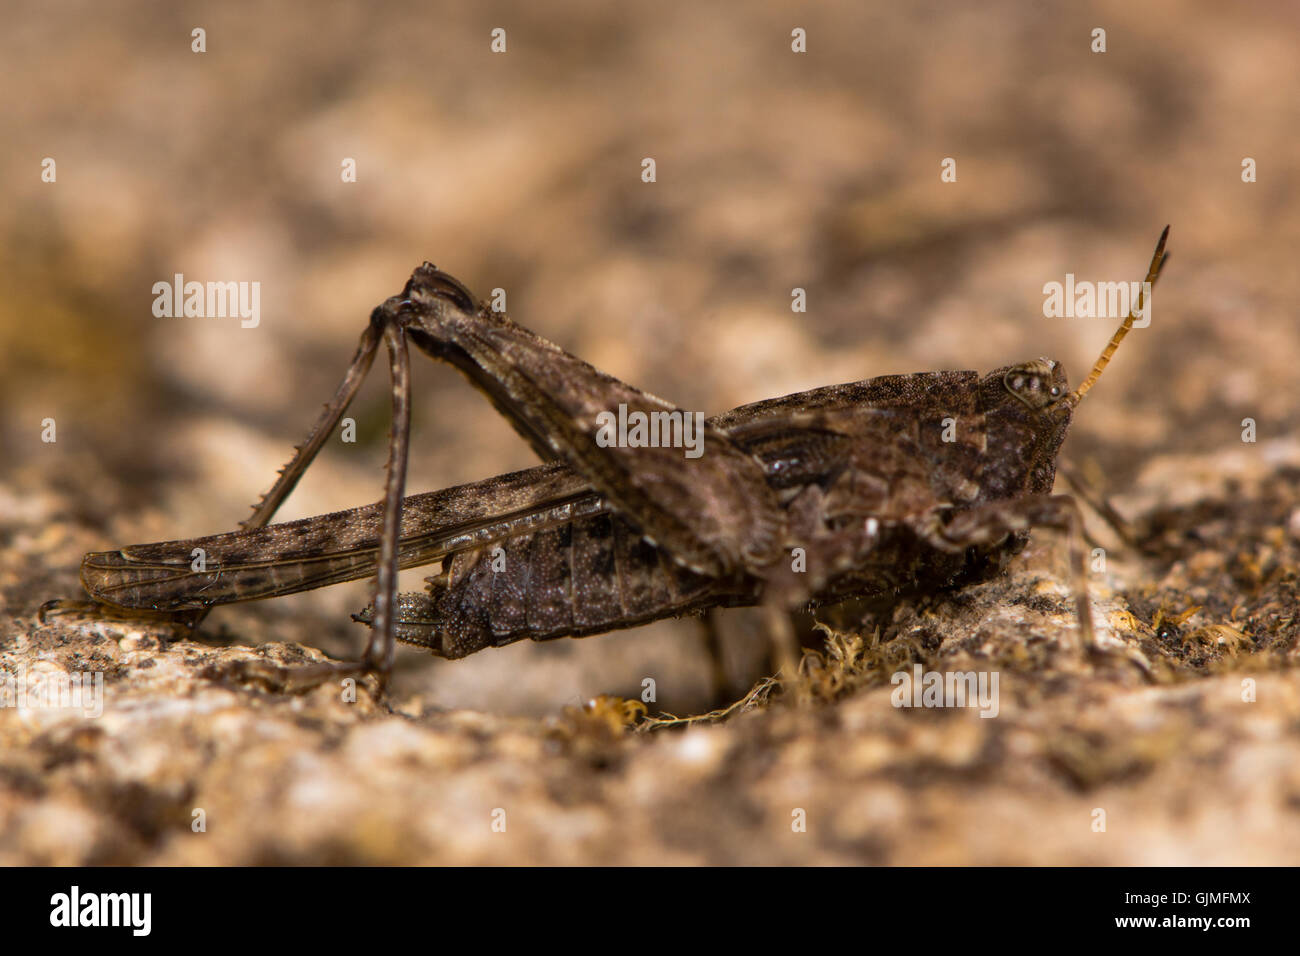 Slender groundhopper (Tetrix subulata) adult. Grasshopper-like insect in order Orthoptera with wings extending beyond - Stock Image